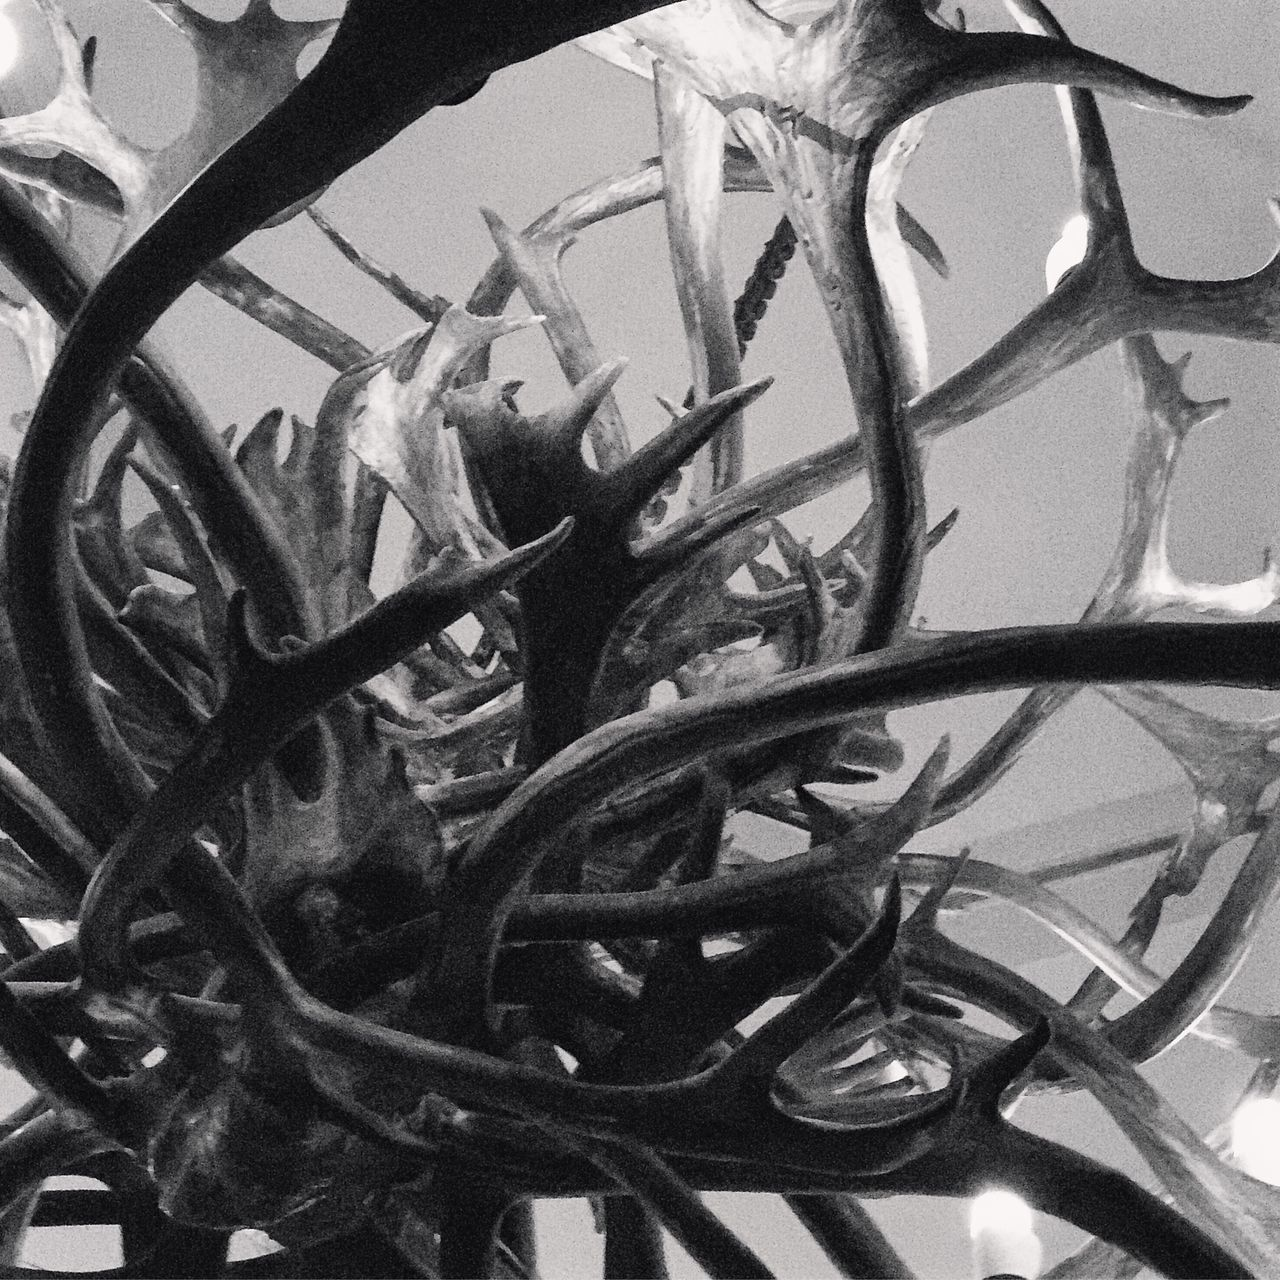 Close-up Outdoors Antler Antlers Stag Stag Antlers Blackandwhite Blackandwhite Photography Blackandwhitephoto Blackandwhitephotography Bandw Abstract Photography Abstract Abstract Art Sculpture Antler Art Art Photography Art ArtWork Cheshire Chester No People